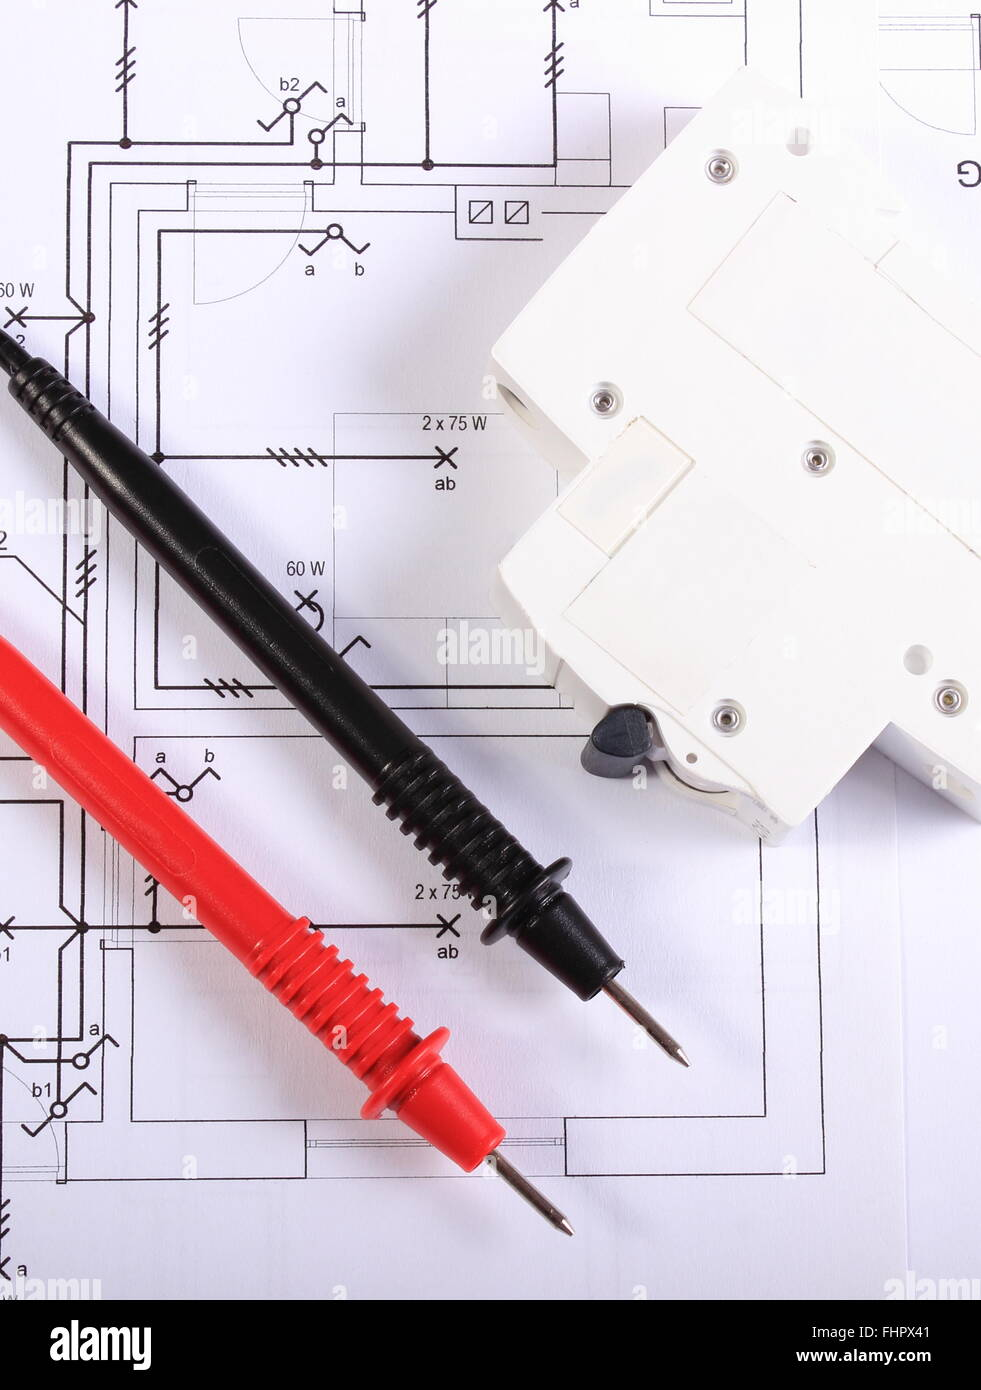 cables of multimeter and electric fuse lying on construction drawings of house electrical drawings and tools for engineer jobs